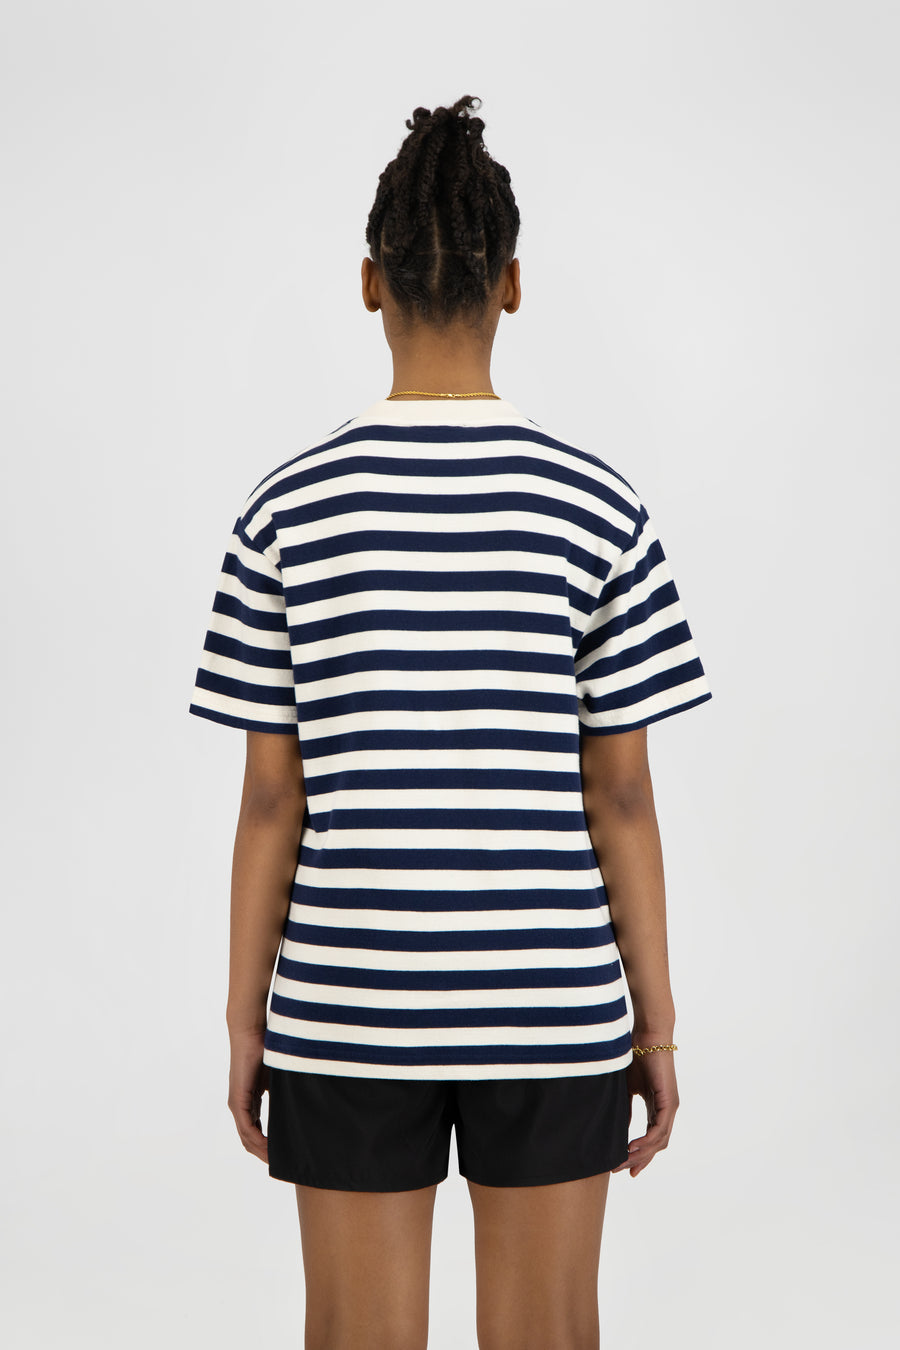 ØLÅF Stripe Sans Tee - White / Blue